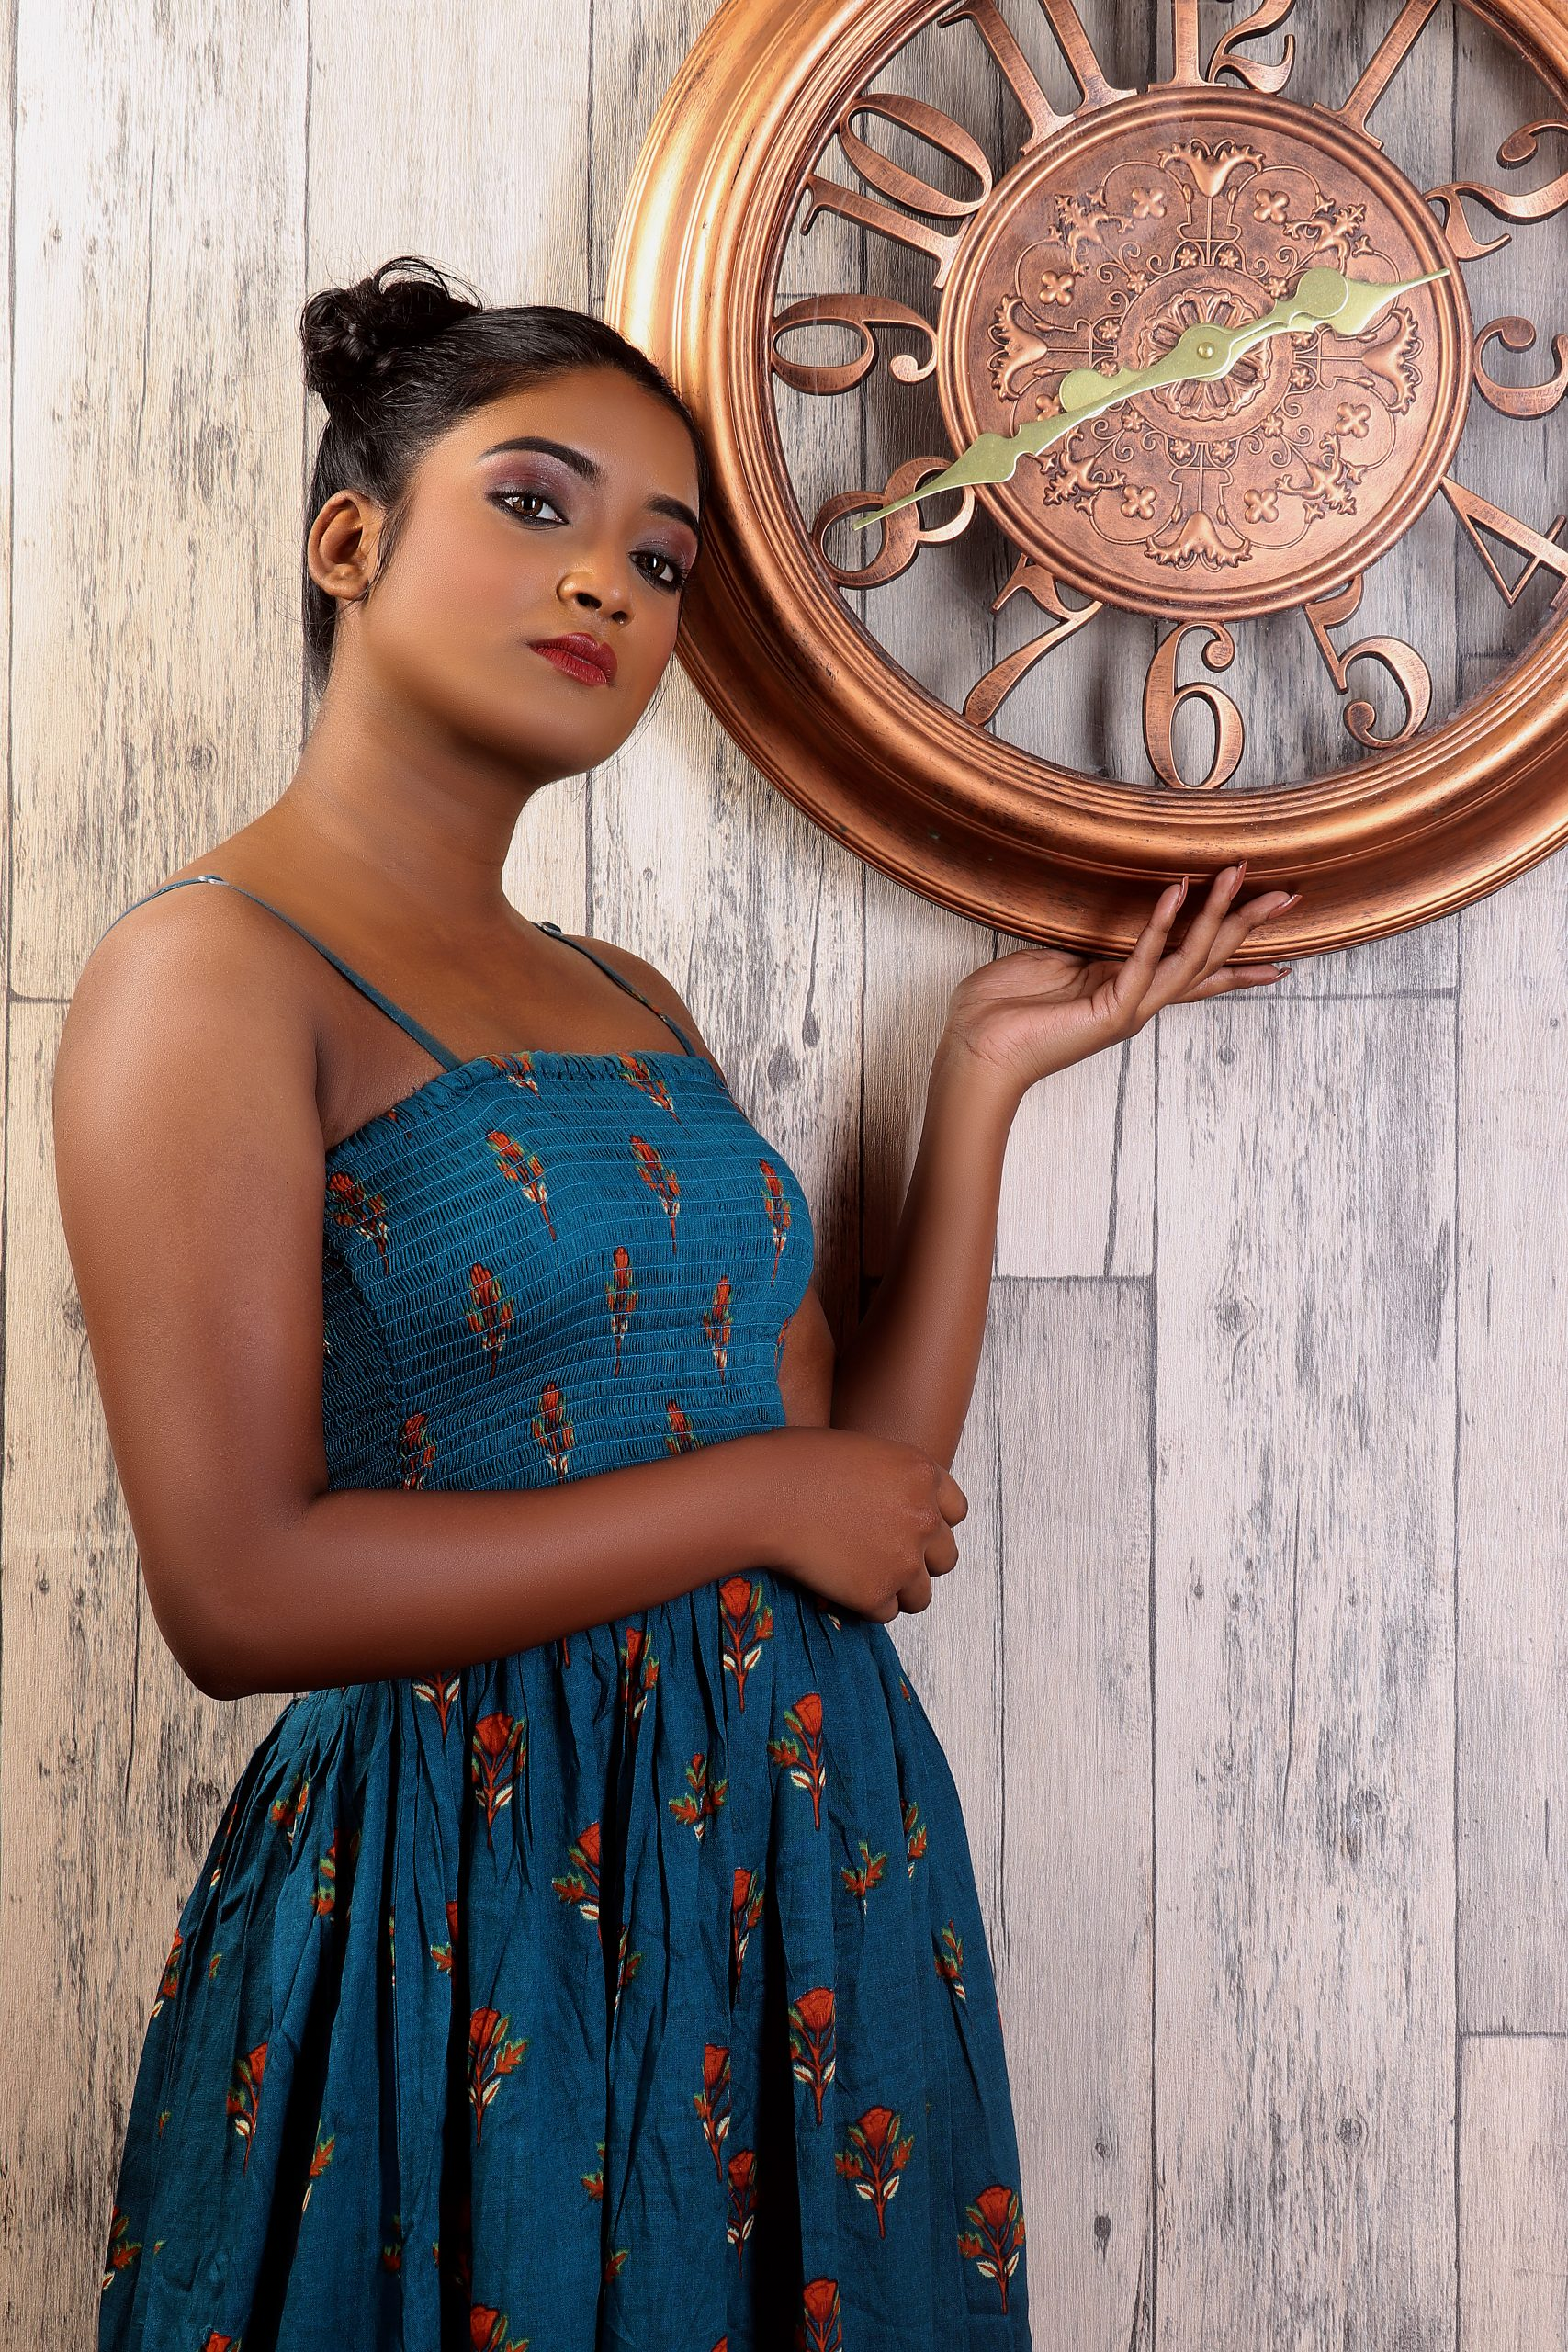 A girl near a wall clock